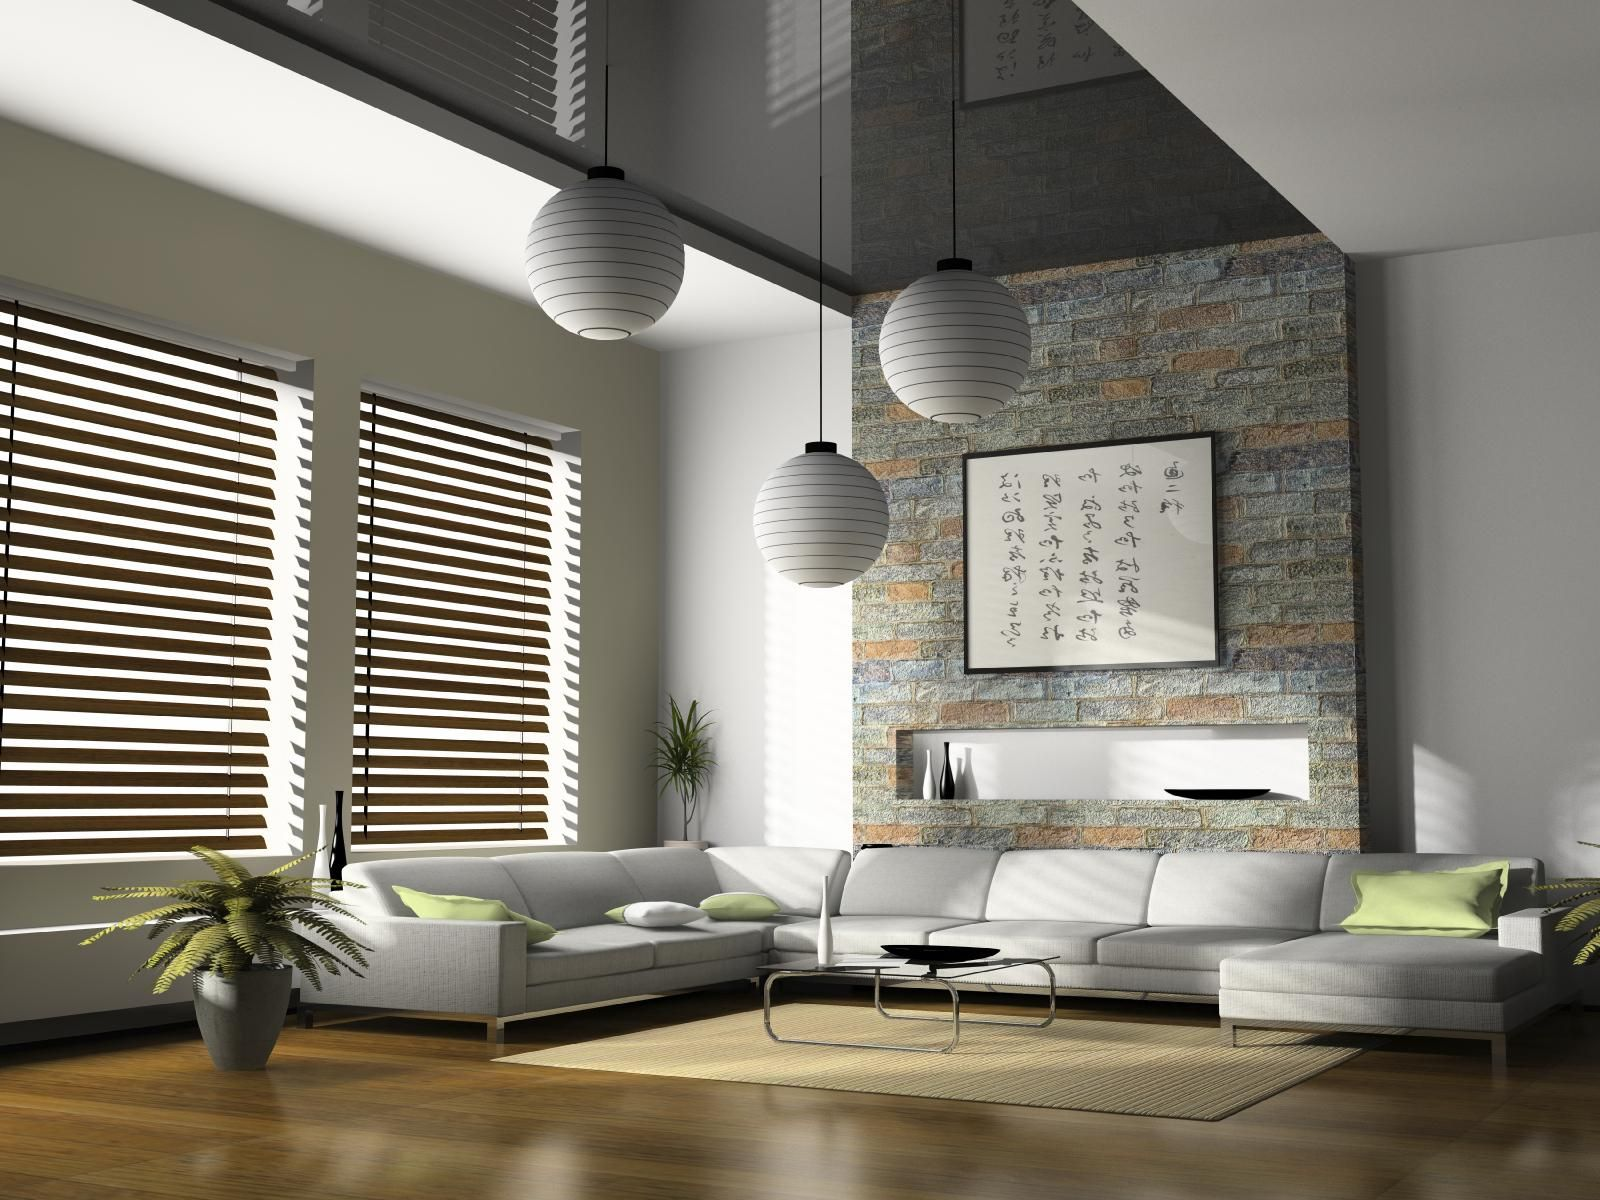 Fashionable window blinds design in modern style living for Window blinds with designs